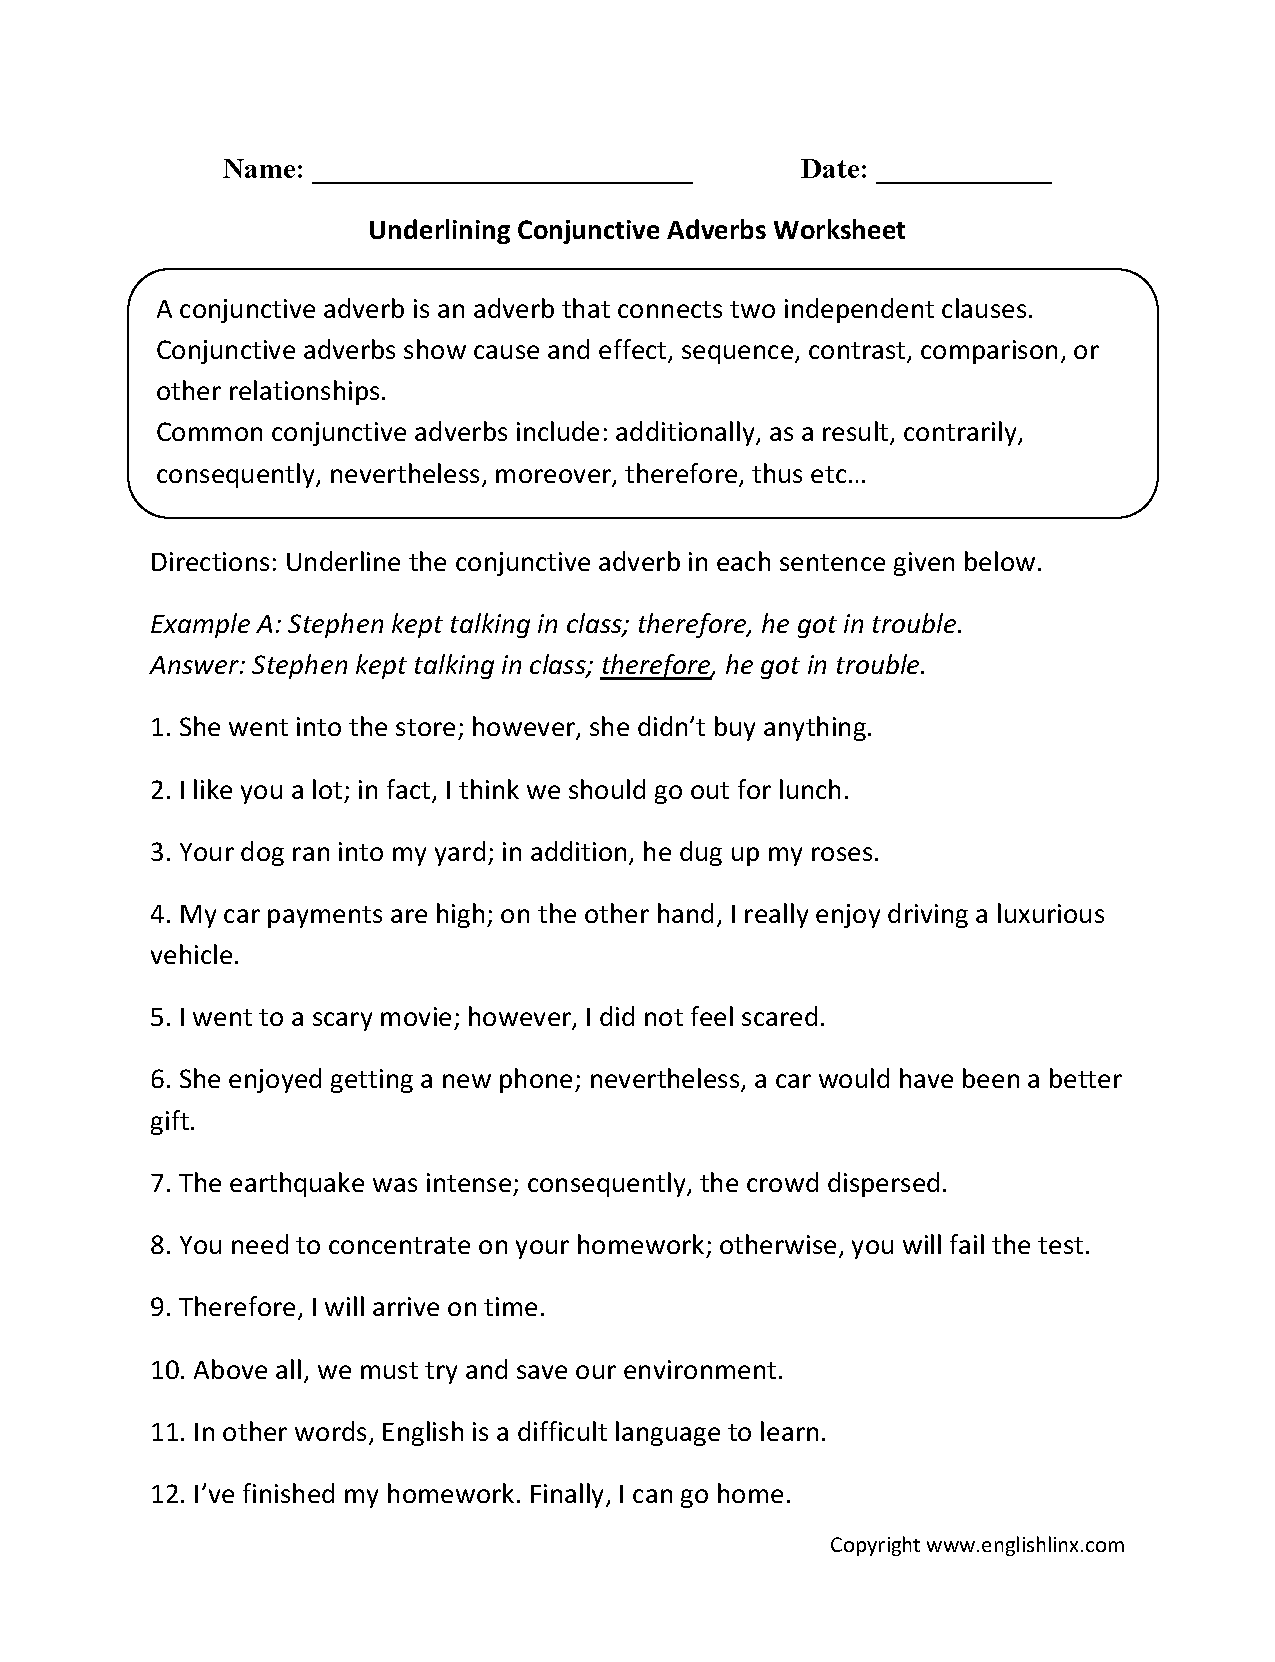 Weirdmailus  Stunning Englishlinxcom  Conjunctions Worksheets With Marvelous Worksheet With Nice Algebra Worksheet With Answers Also Two Point Perspective Worksheet In Addition Counting Coin Worksheets And Preschool Number Worksheets  As Well As Free Printable Ged Math Worksheets Additionally Multiplication Using Arrays Worksheets From Englishlinxcom With Weirdmailus  Marvelous Englishlinxcom  Conjunctions Worksheets With Nice Worksheet And Stunning Algebra Worksheet With Answers Also Two Point Perspective Worksheet In Addition Counting Coin Worksheets From Englishlinxcom